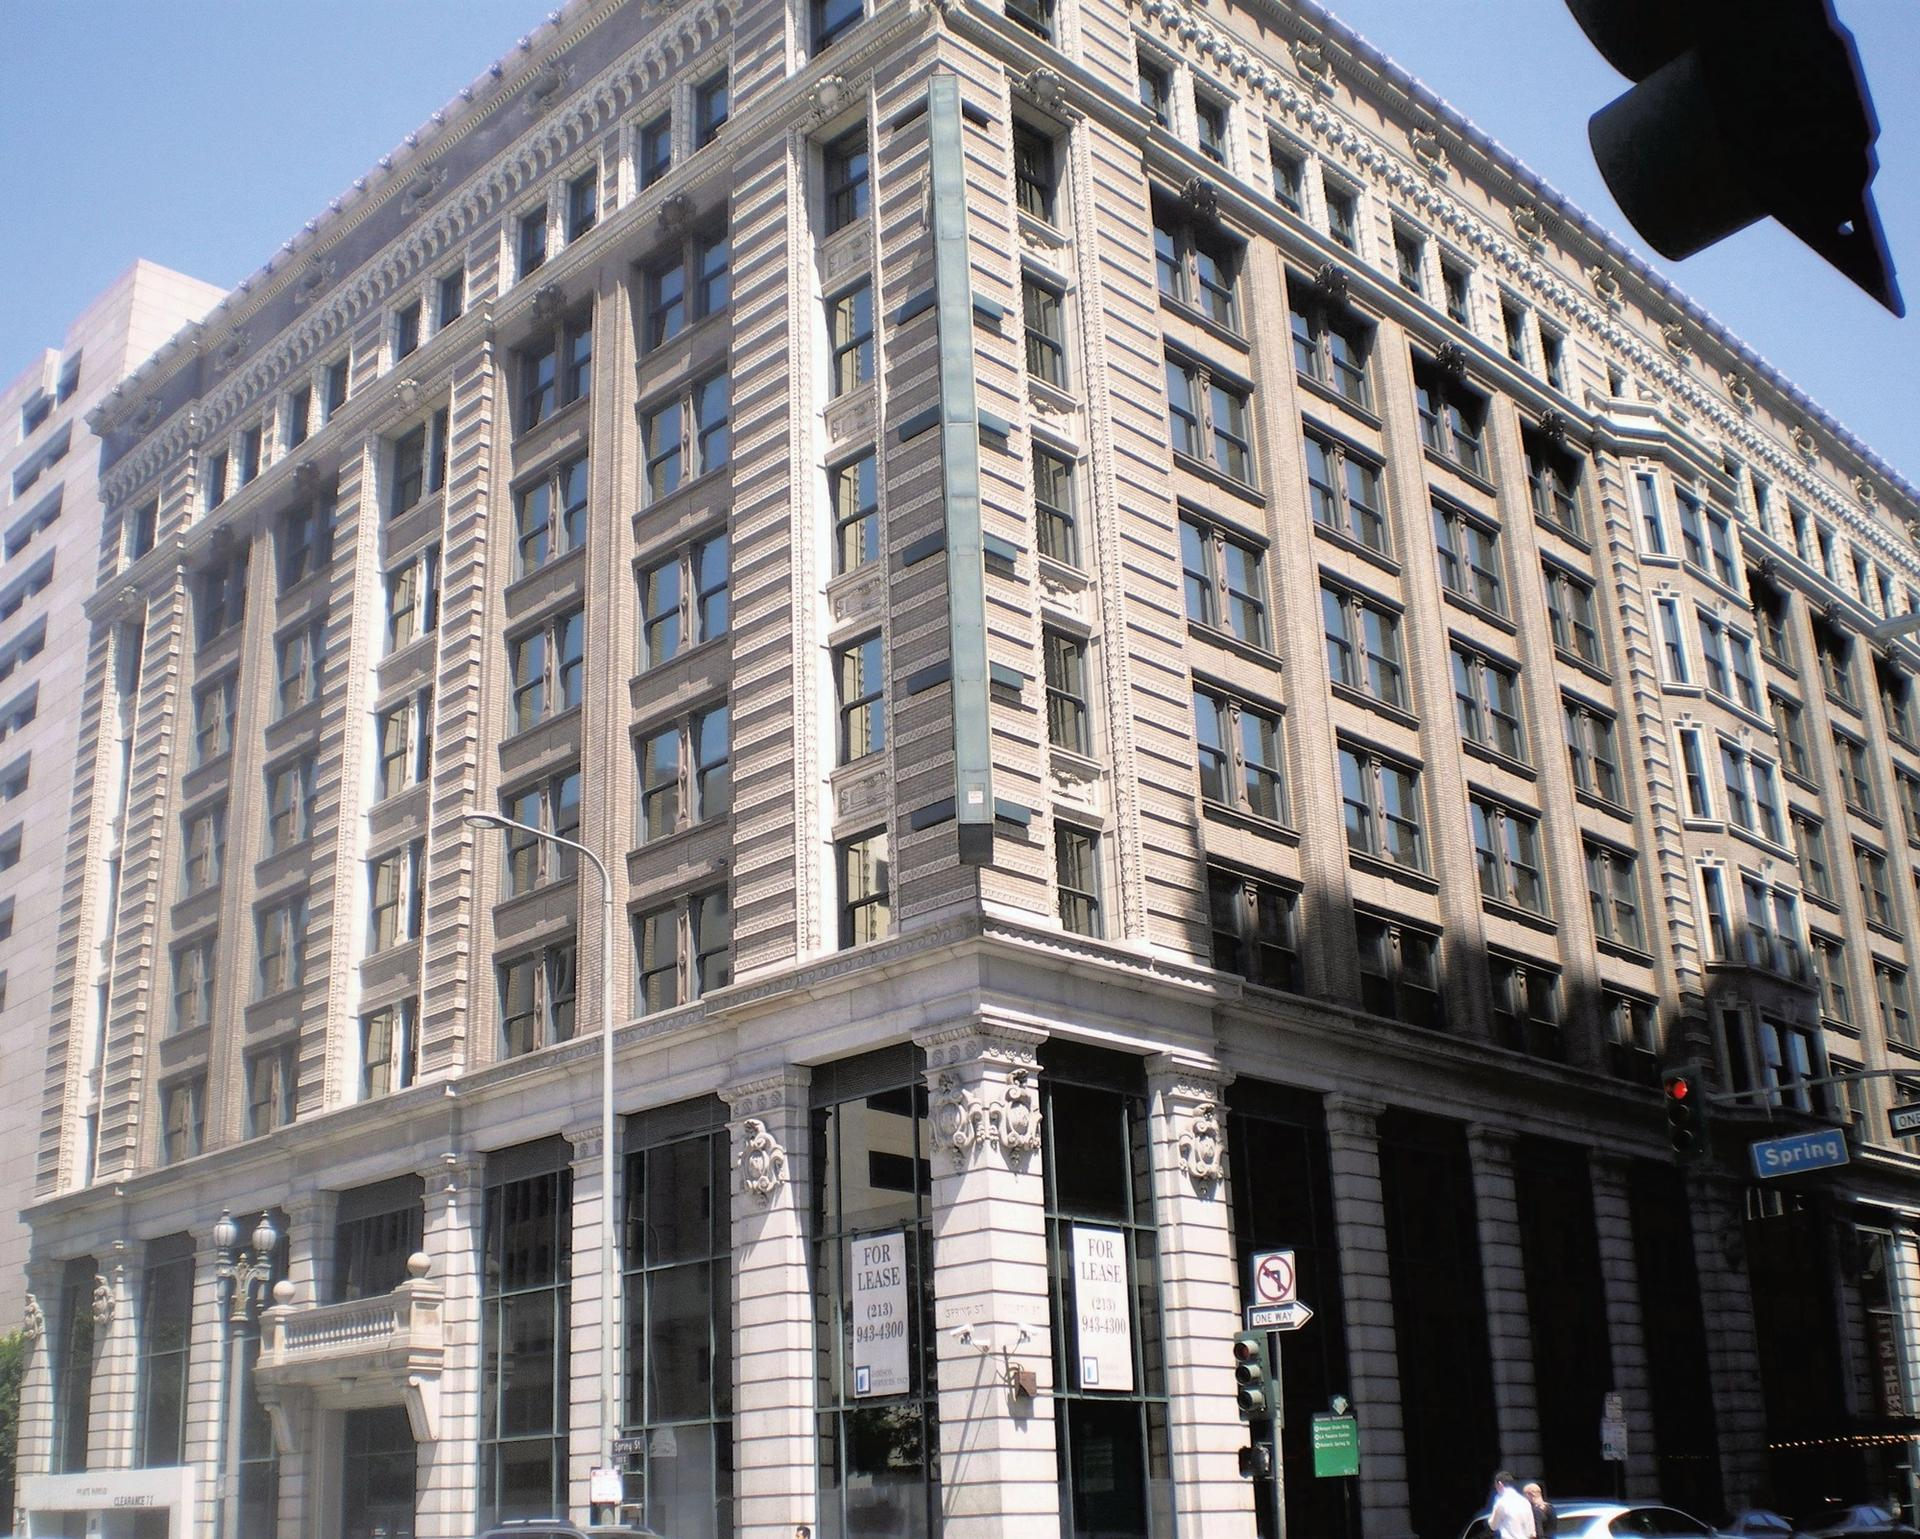 The Hellman Building in Los Angeles, home of the Main Museum, which closed in 2019 Photo: Wikimedia Commons